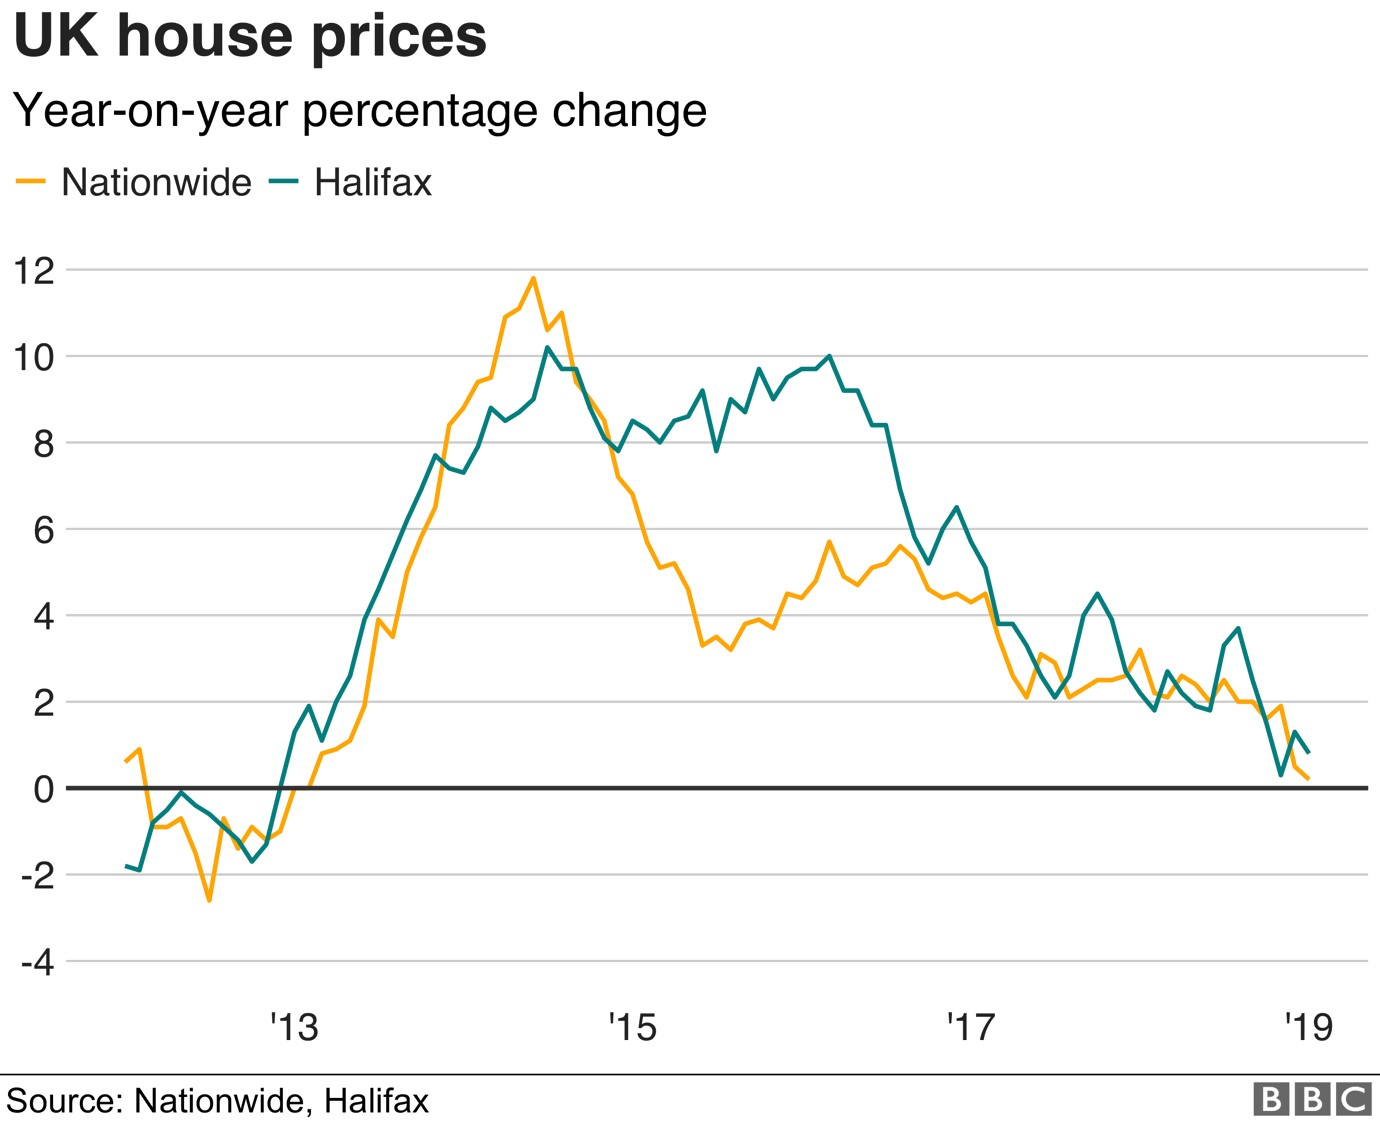 uk house prices from 2013 to 2019